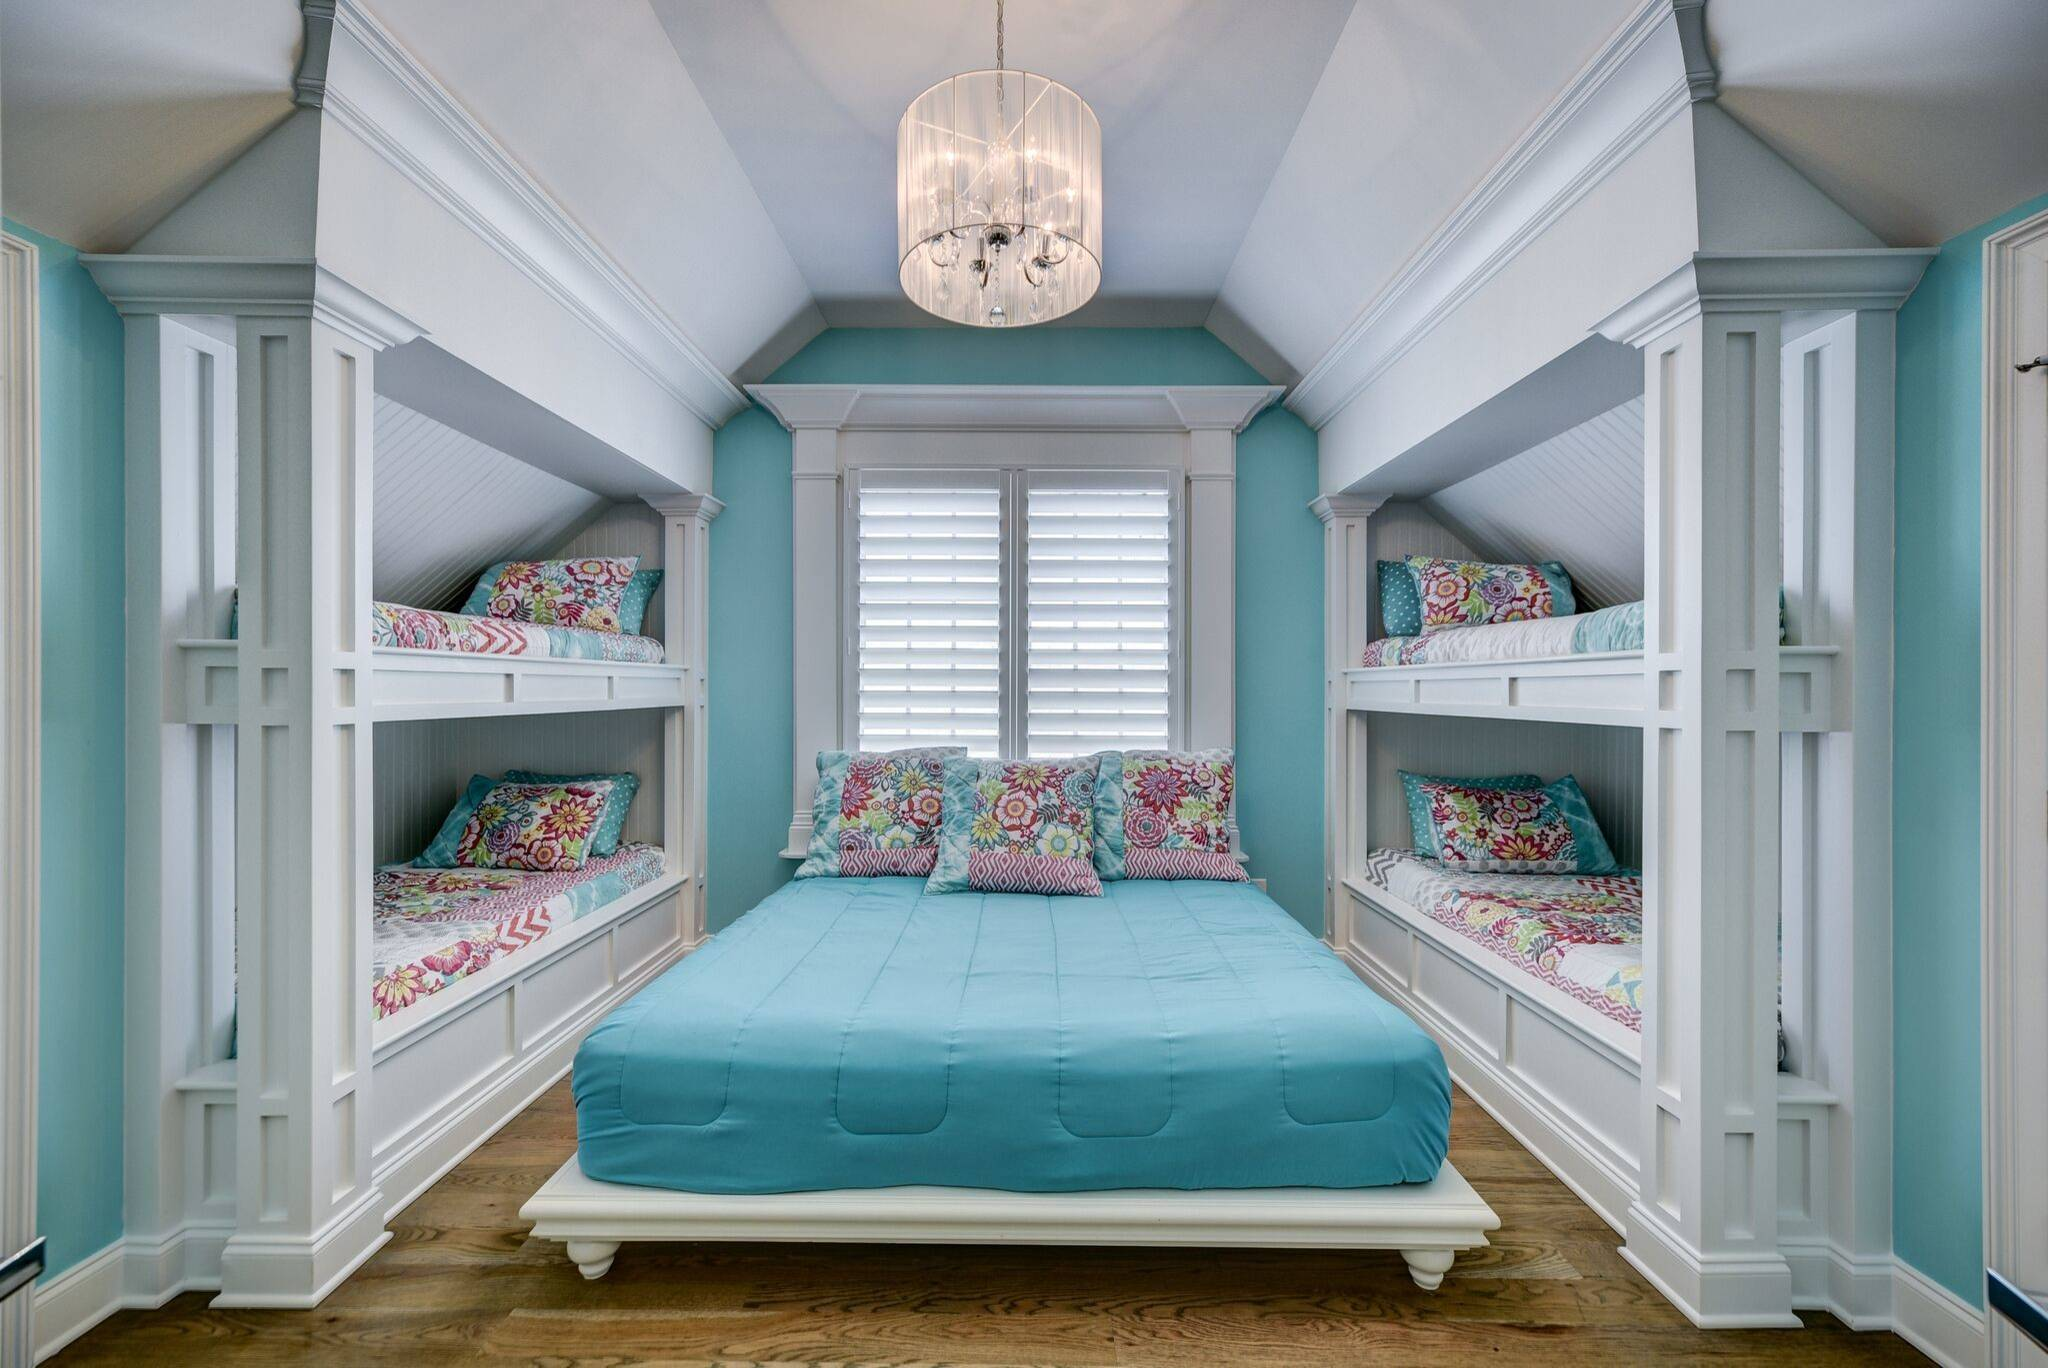 75 Beautiful Teen Room Pictures Ideas Color Turquoise March 2021 Houzz